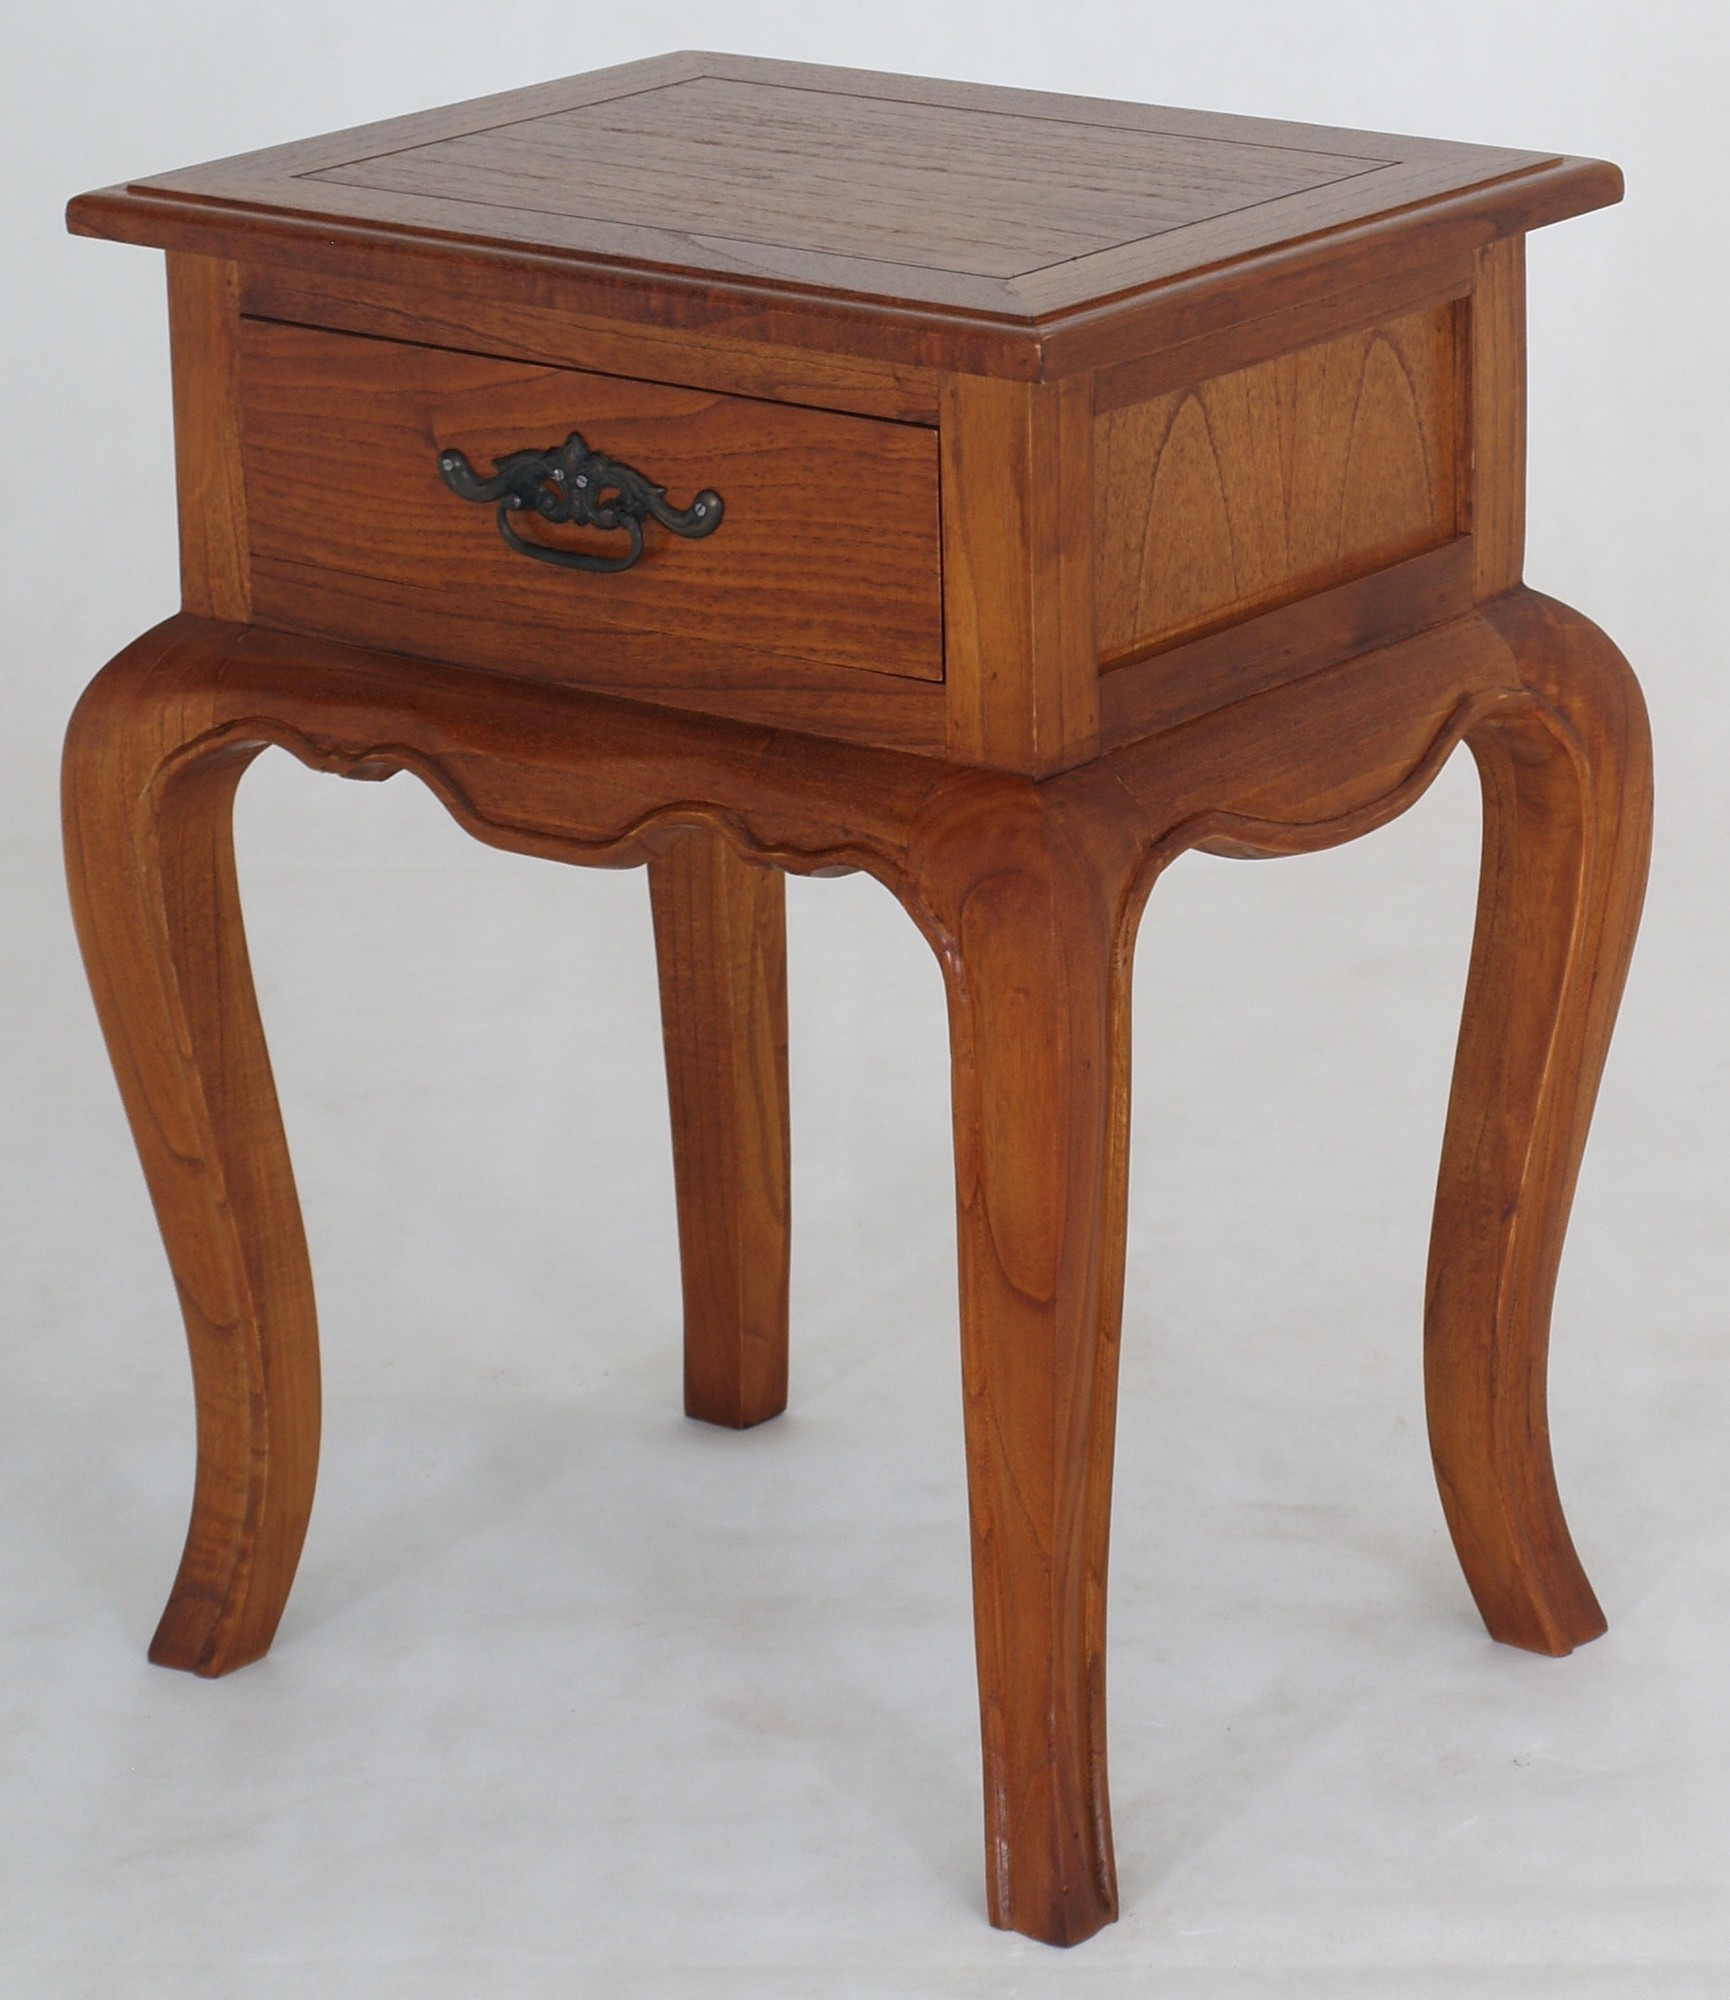 Provincial Bedside Tables Details About New Emile French Provincial 1 Drawer Lamp Table La Verde Bedside Tables